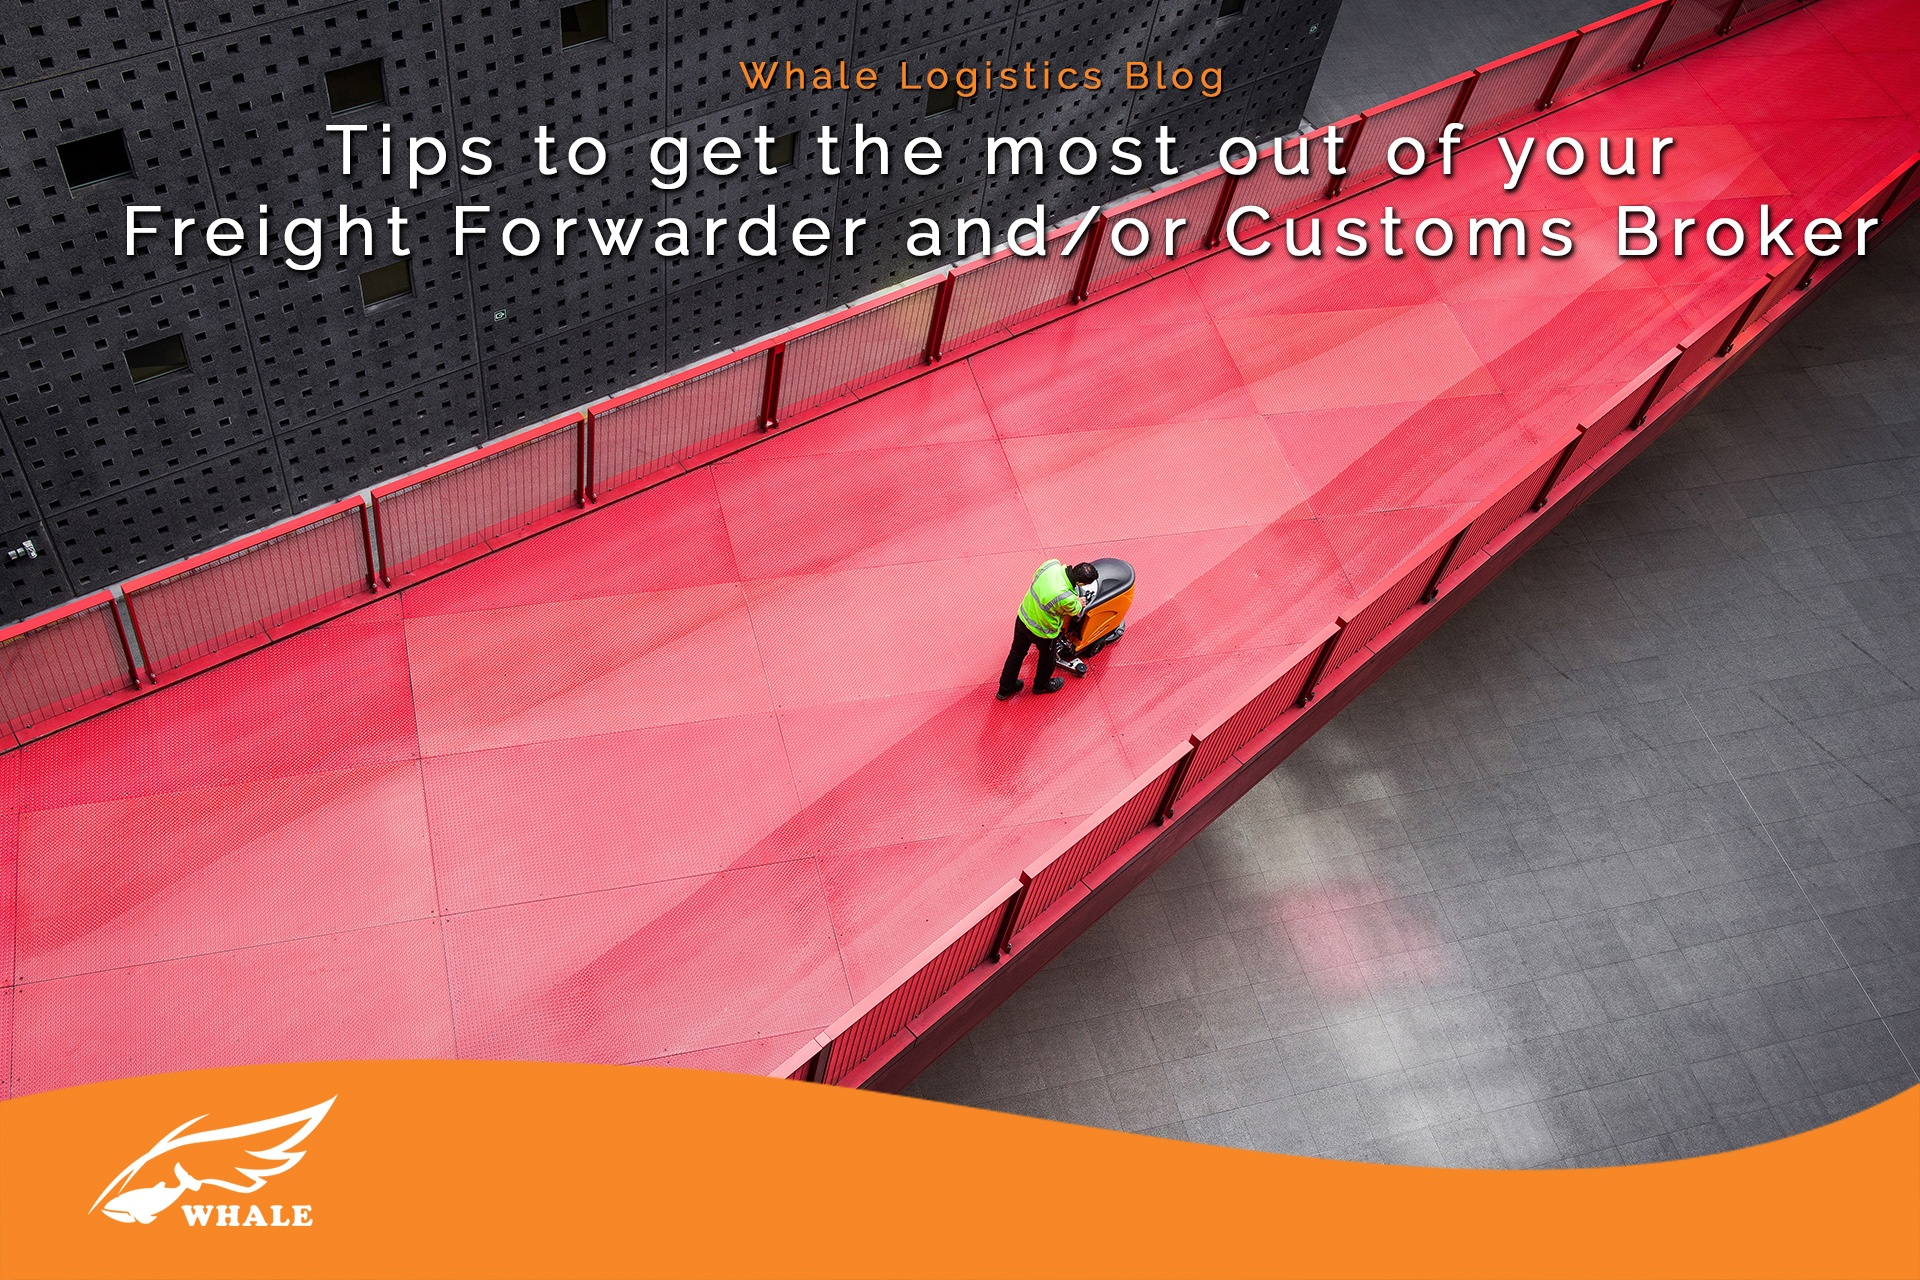 Tips to get the most out of your Freight Forwarder and/or Customs Broker